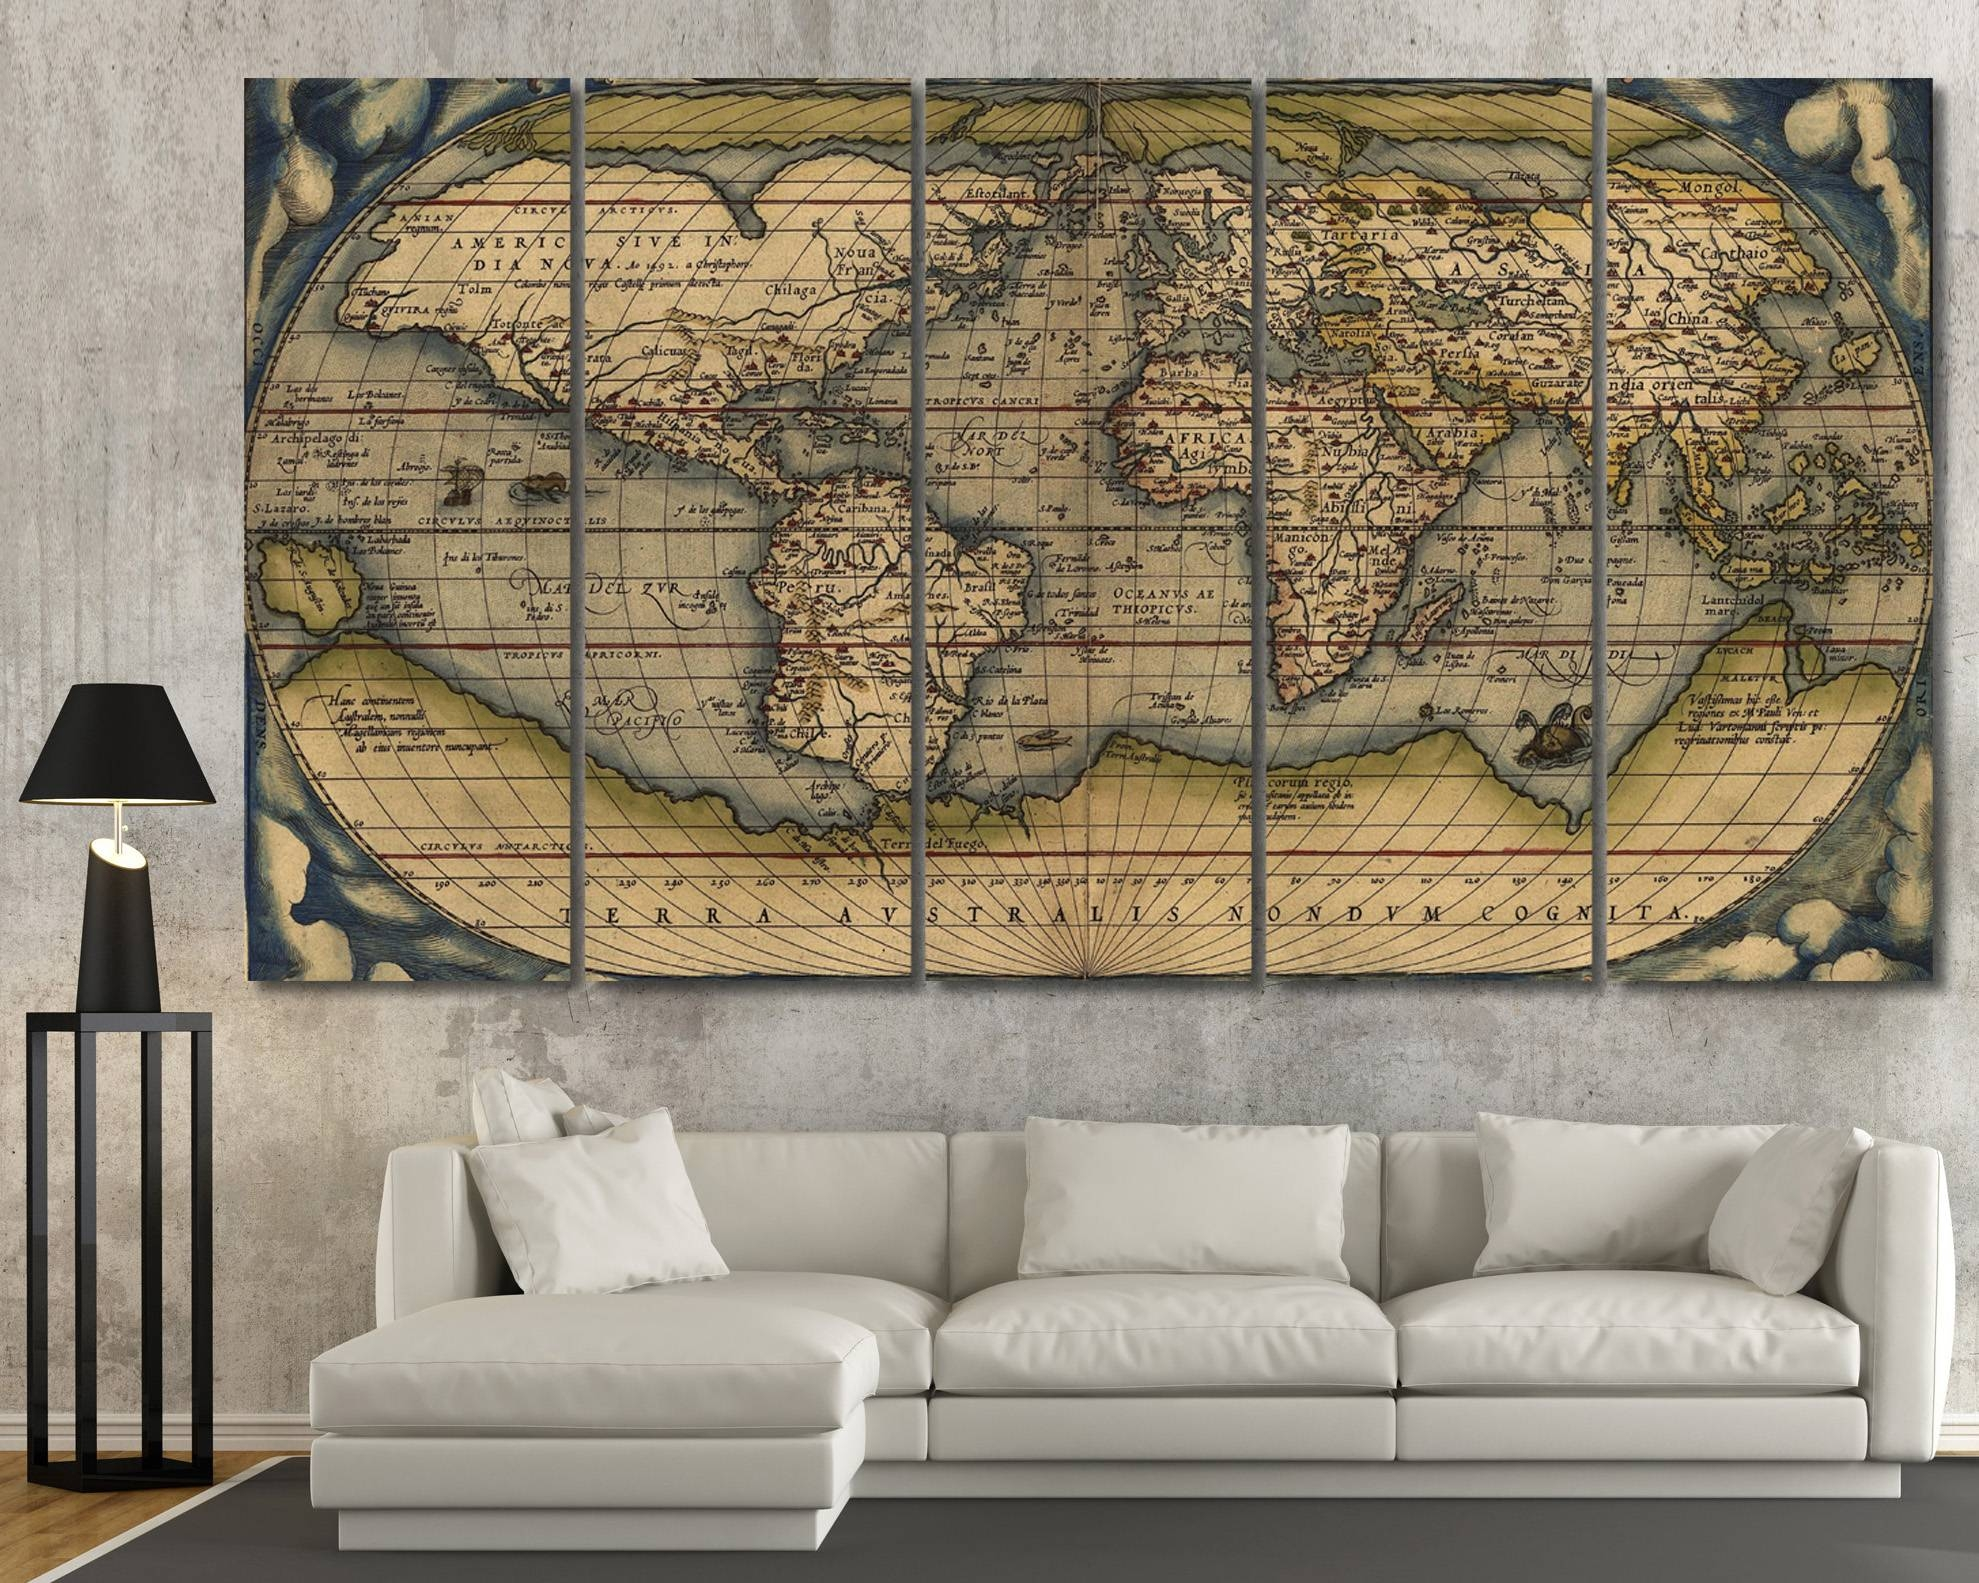 Large Vintage Wall Art Old World Map At Texelprintart With Regard To Latest Old Map Wall Art (View 2 of 20)